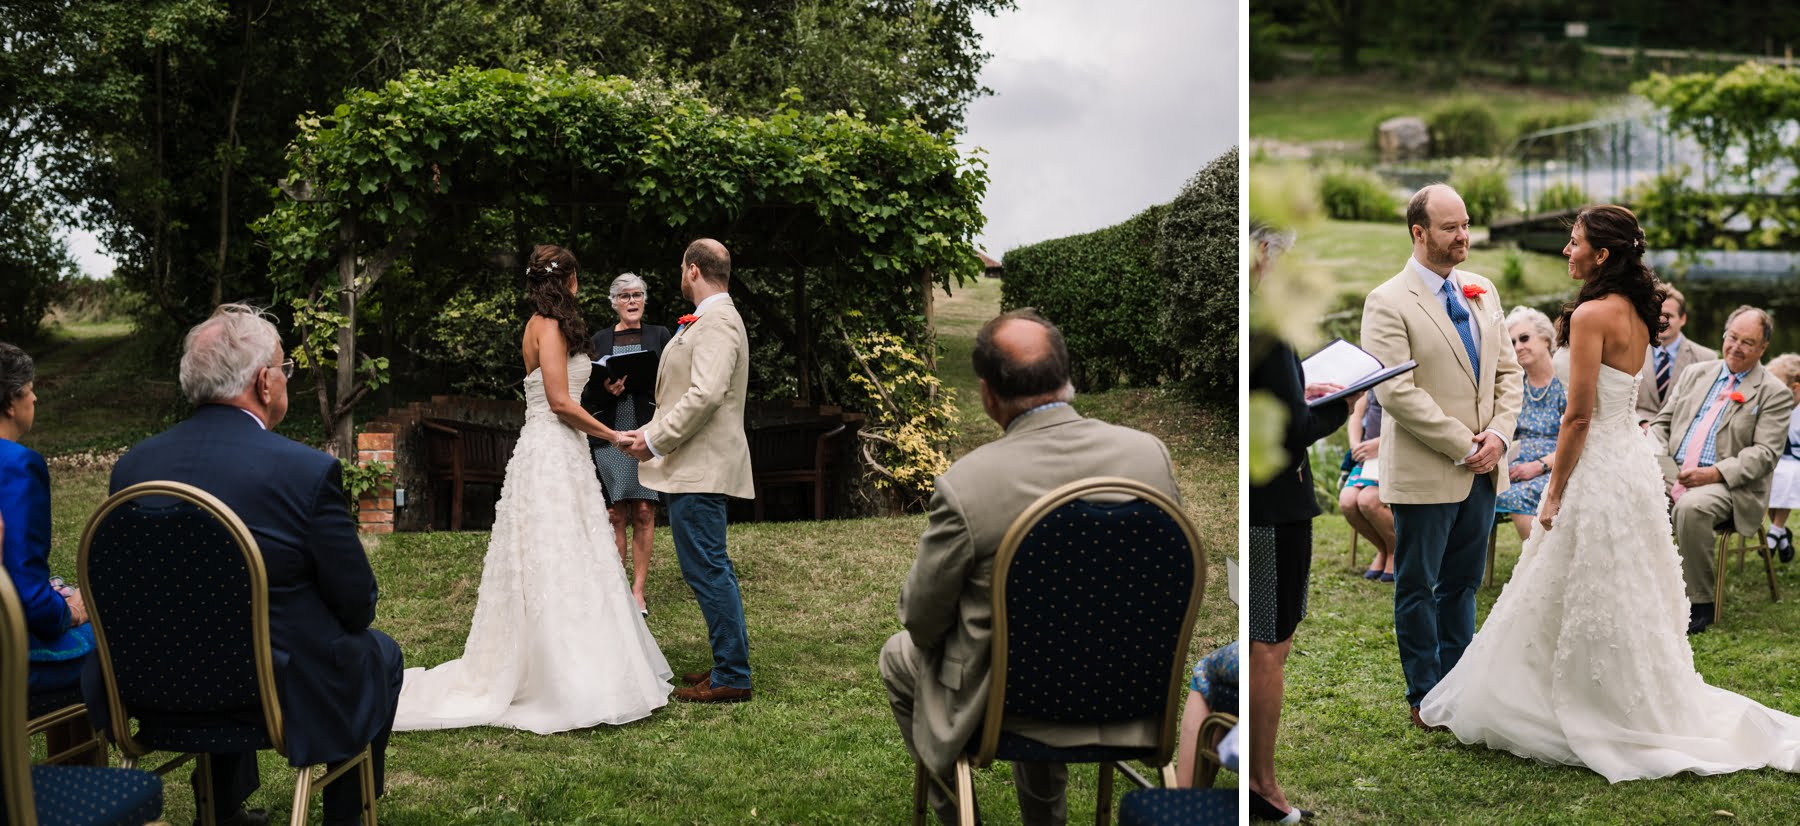 Luccombe Farm Wedding Ceremony